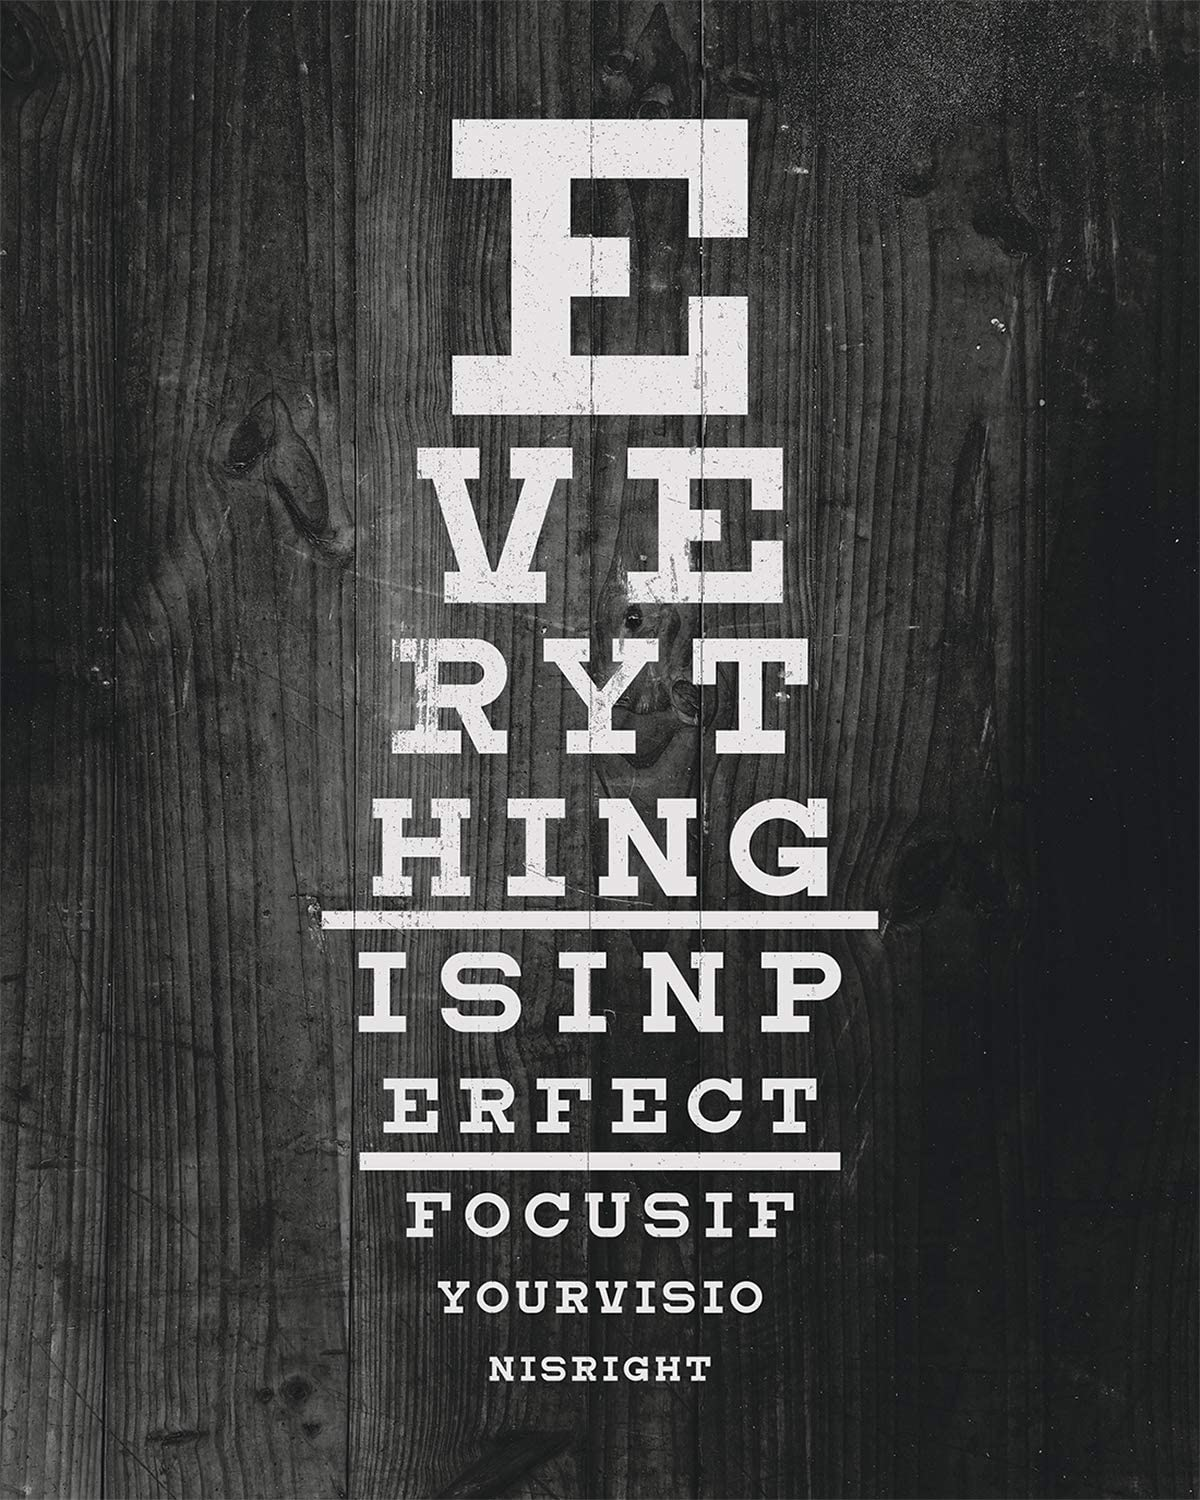 Everything Is In Perfect Focus If Your Vision Is Right - Wall Decor Art Print on a black background - 8x10 unframed print inspired by the Snellen eye chart - witty gift for relatives and friends